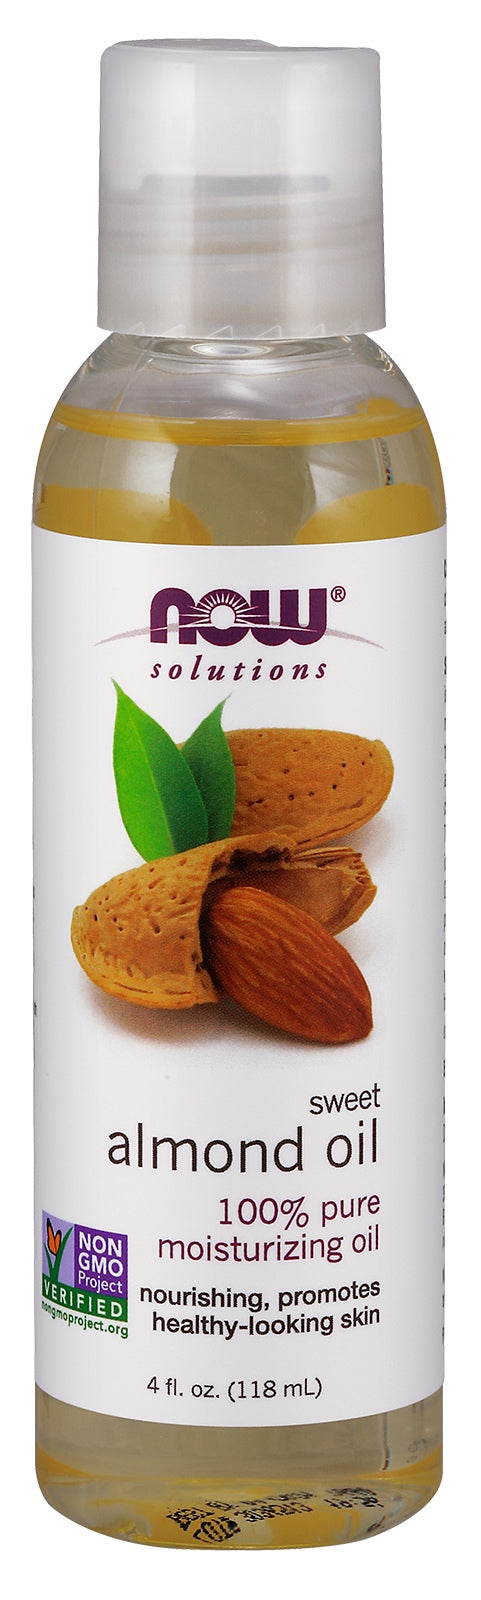 Sweet Almond Oil, 4 fl oz.